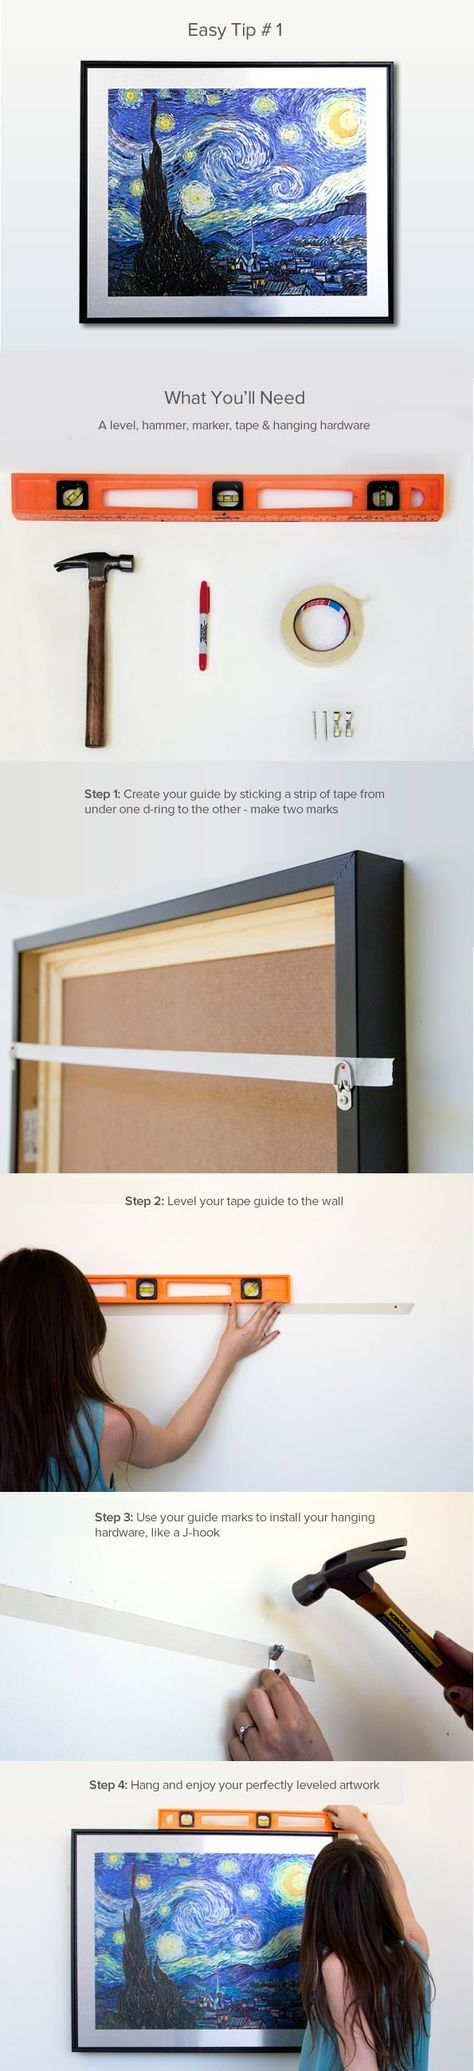 How To Hang Level Art Frames: 4 Easy Steps With Pictures